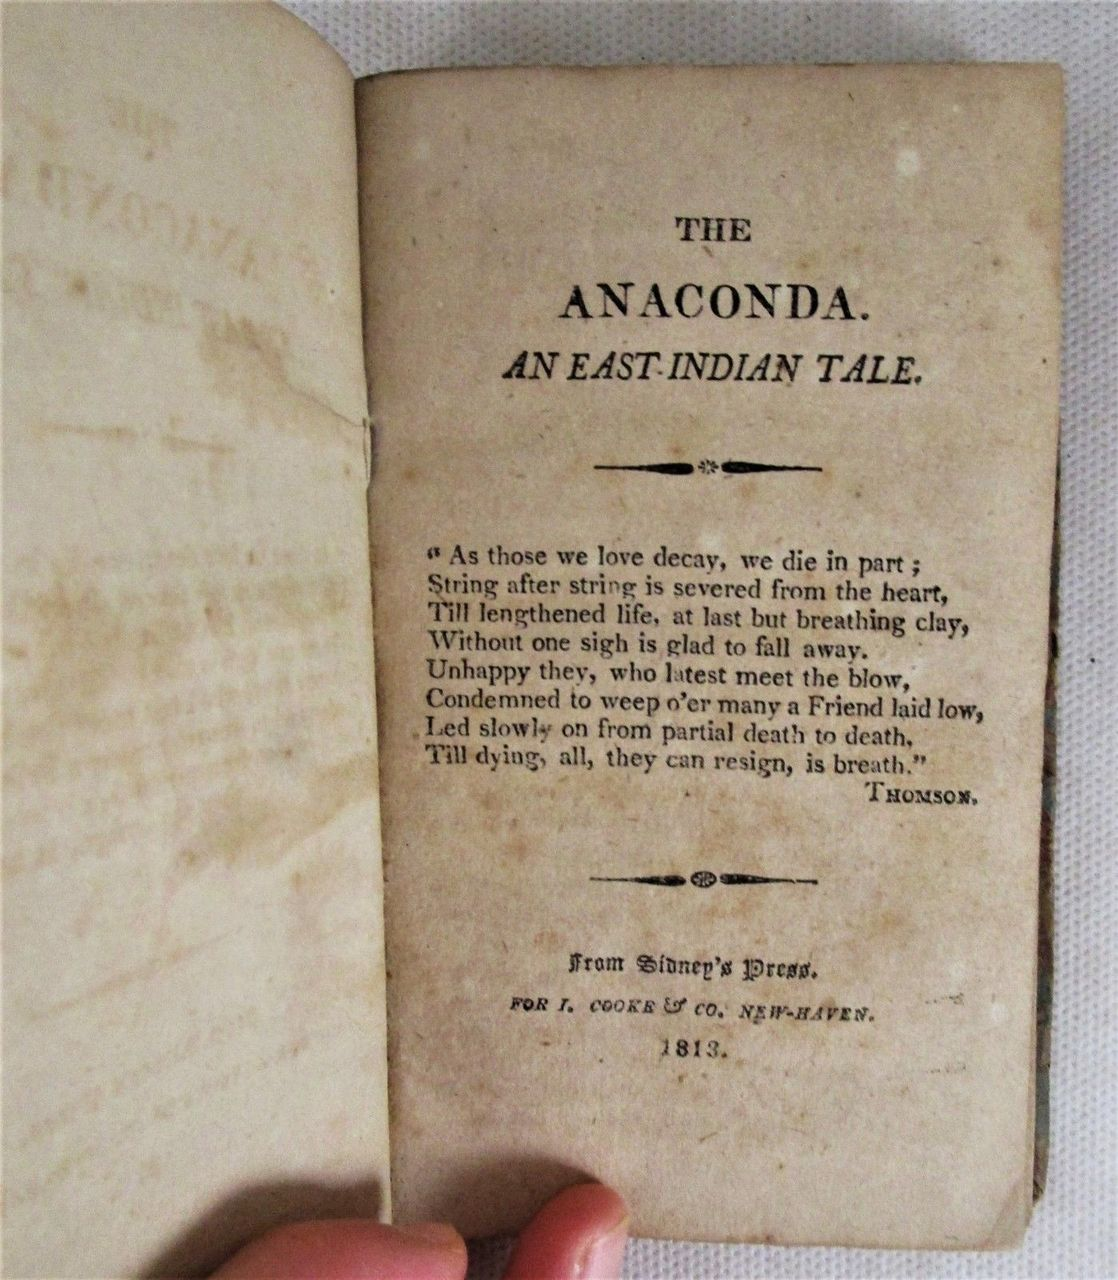 THE ANACONDA: AN EAST INDIAN TALE, by Matthew Gregory Lewis -1813